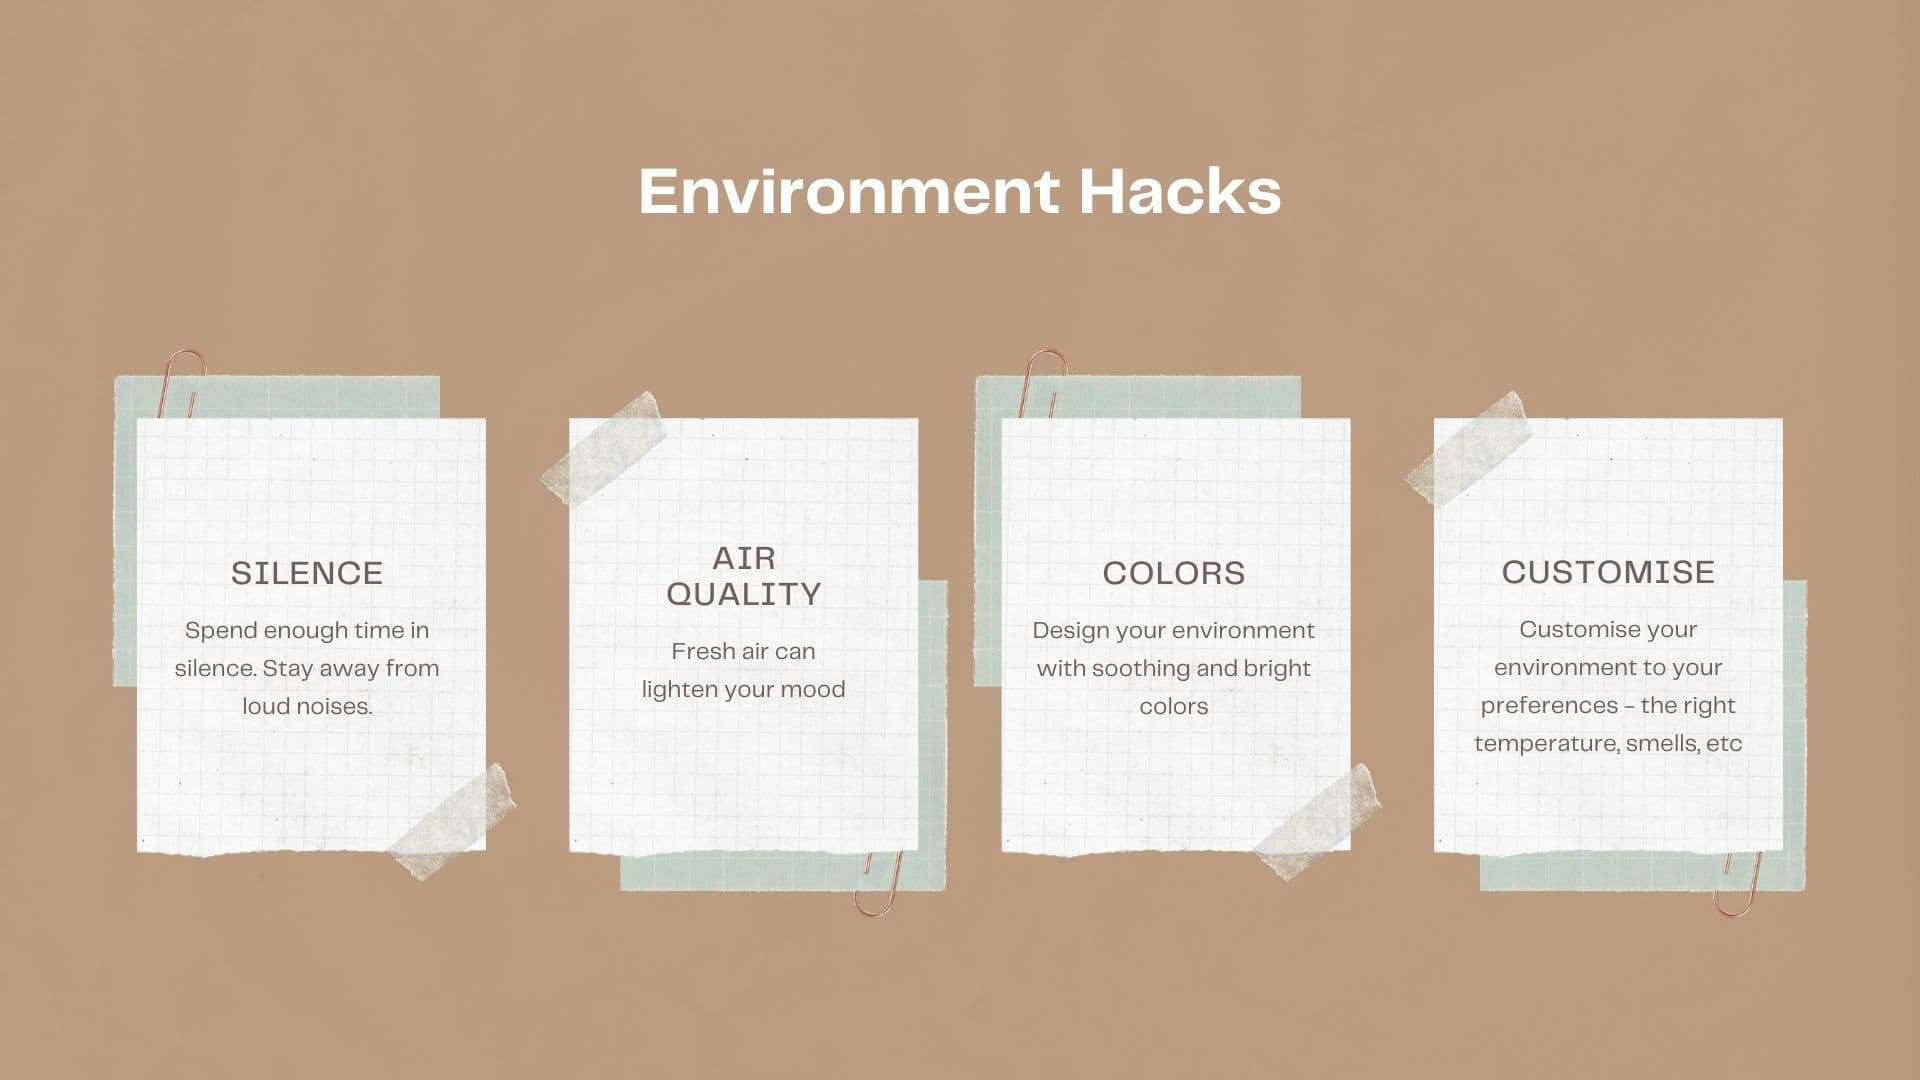 Make Your Environment Work For You